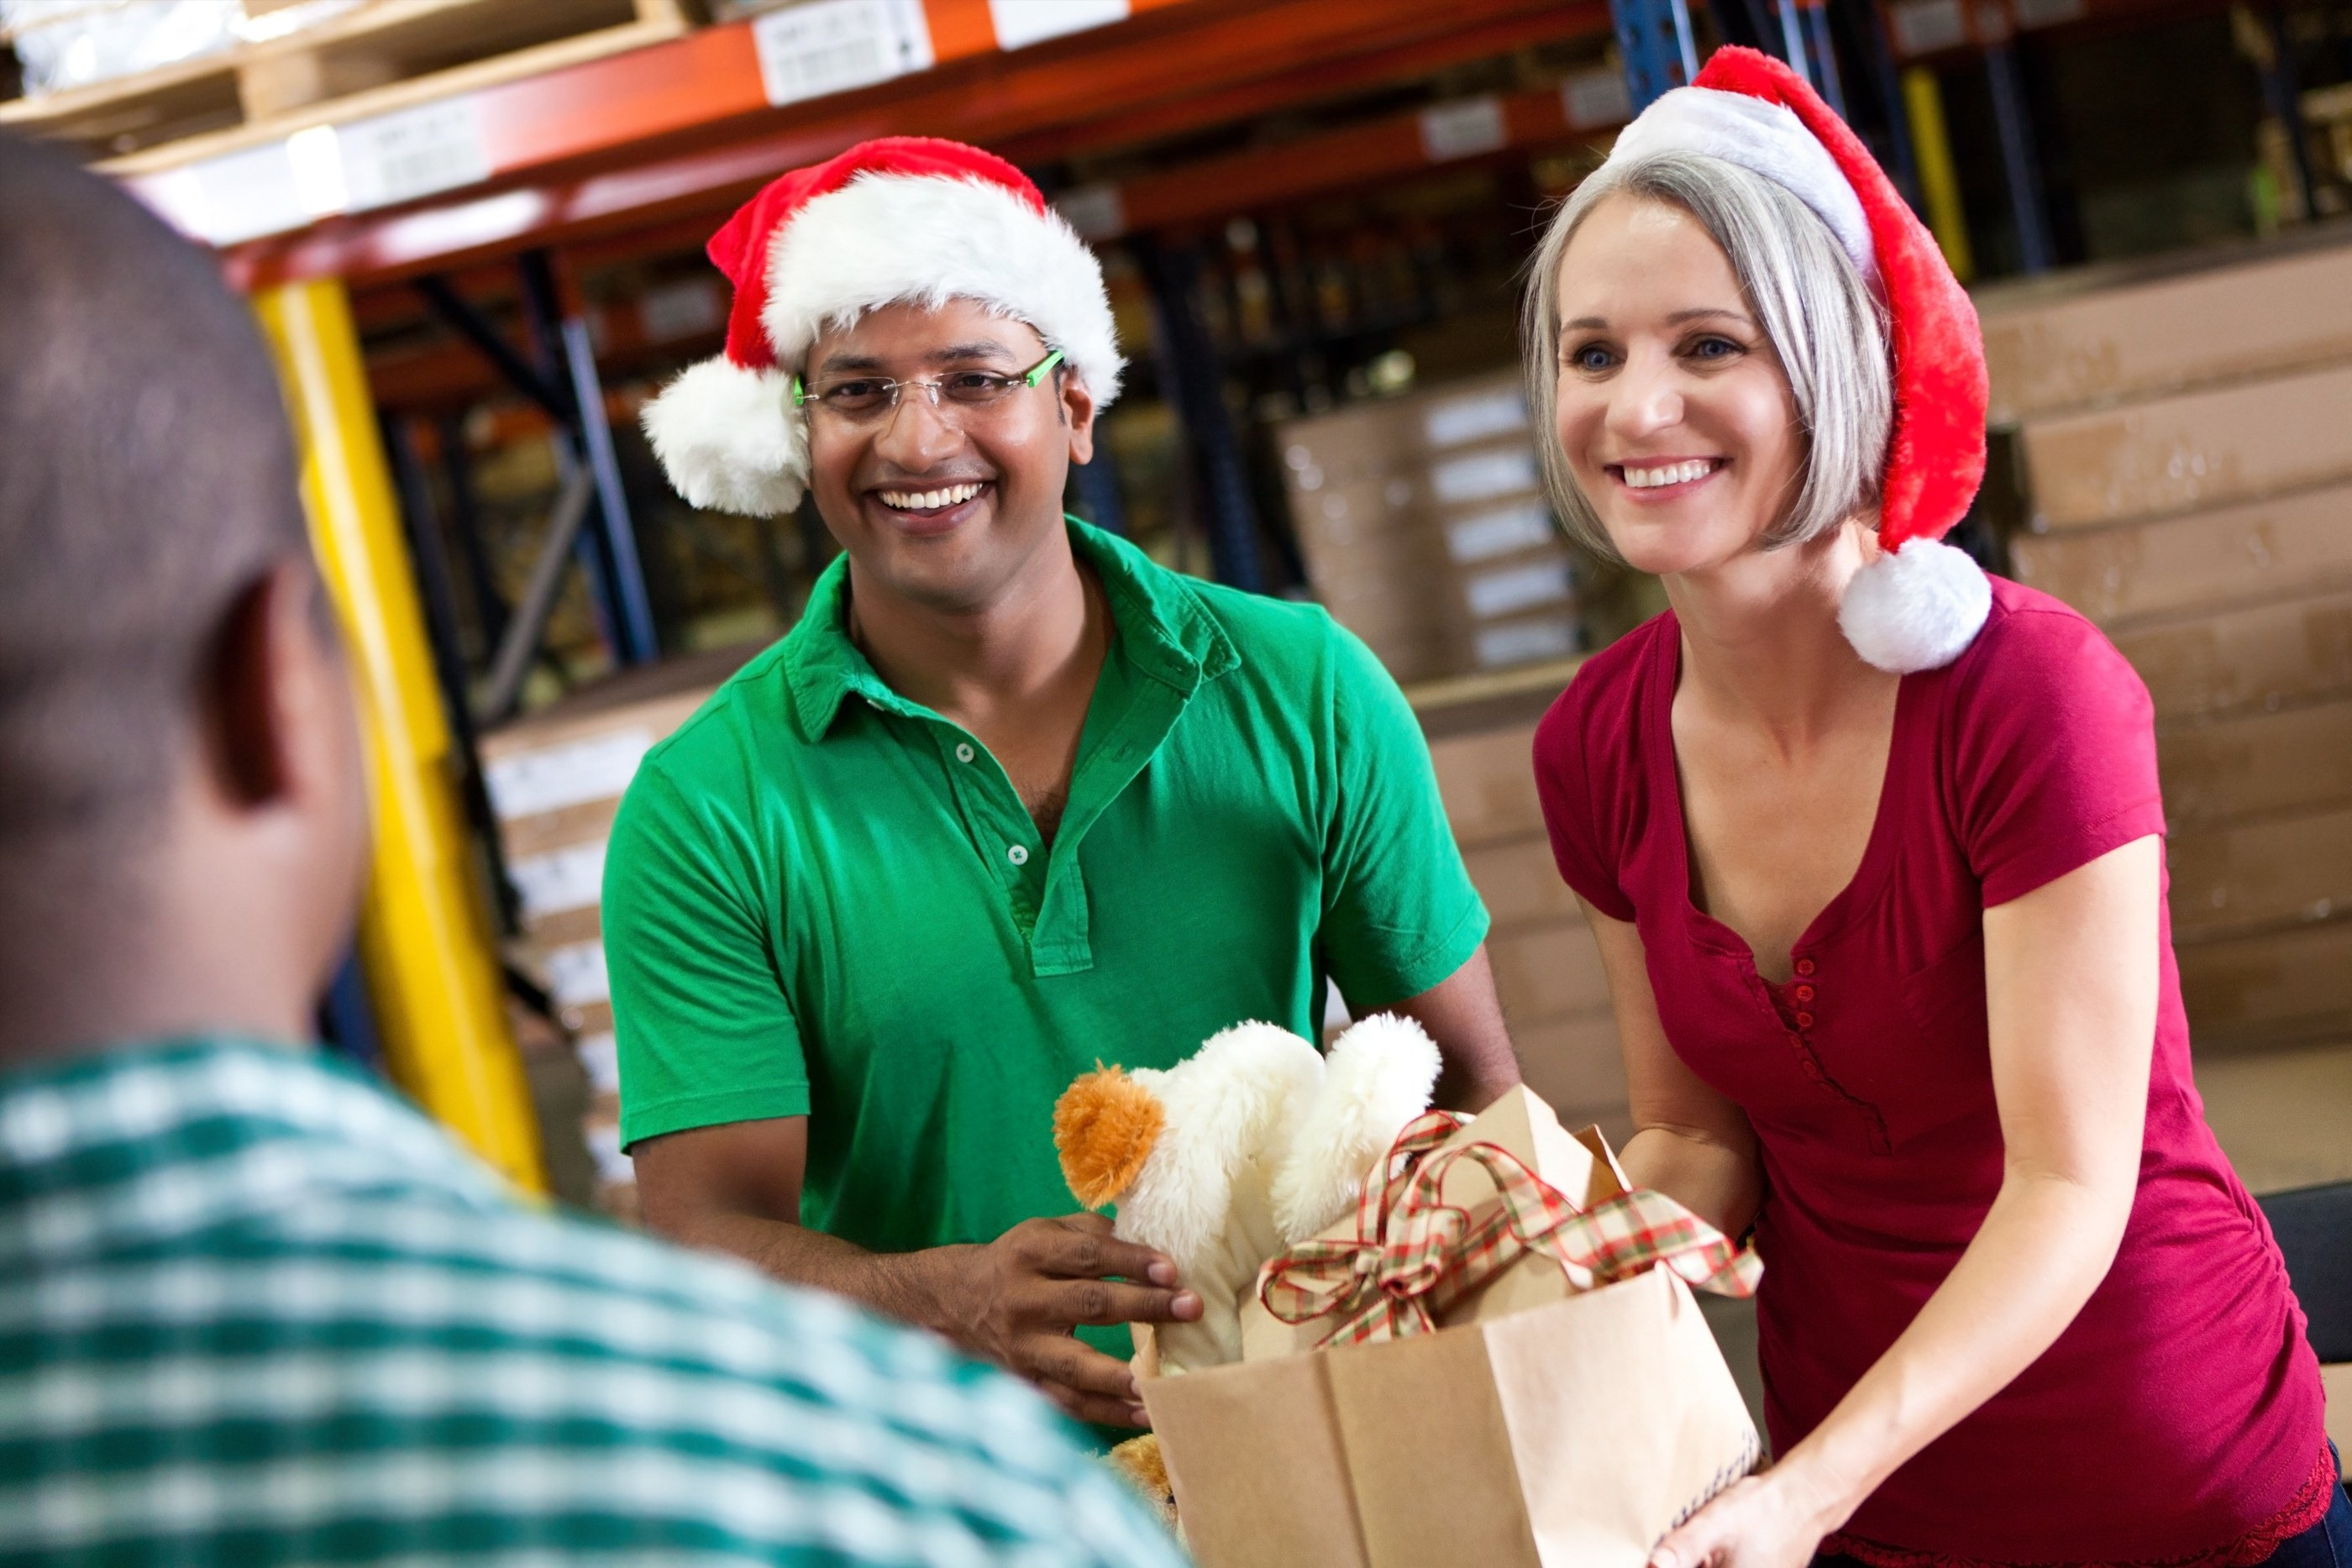 Activities Your Organization Can Do This Holiday Season